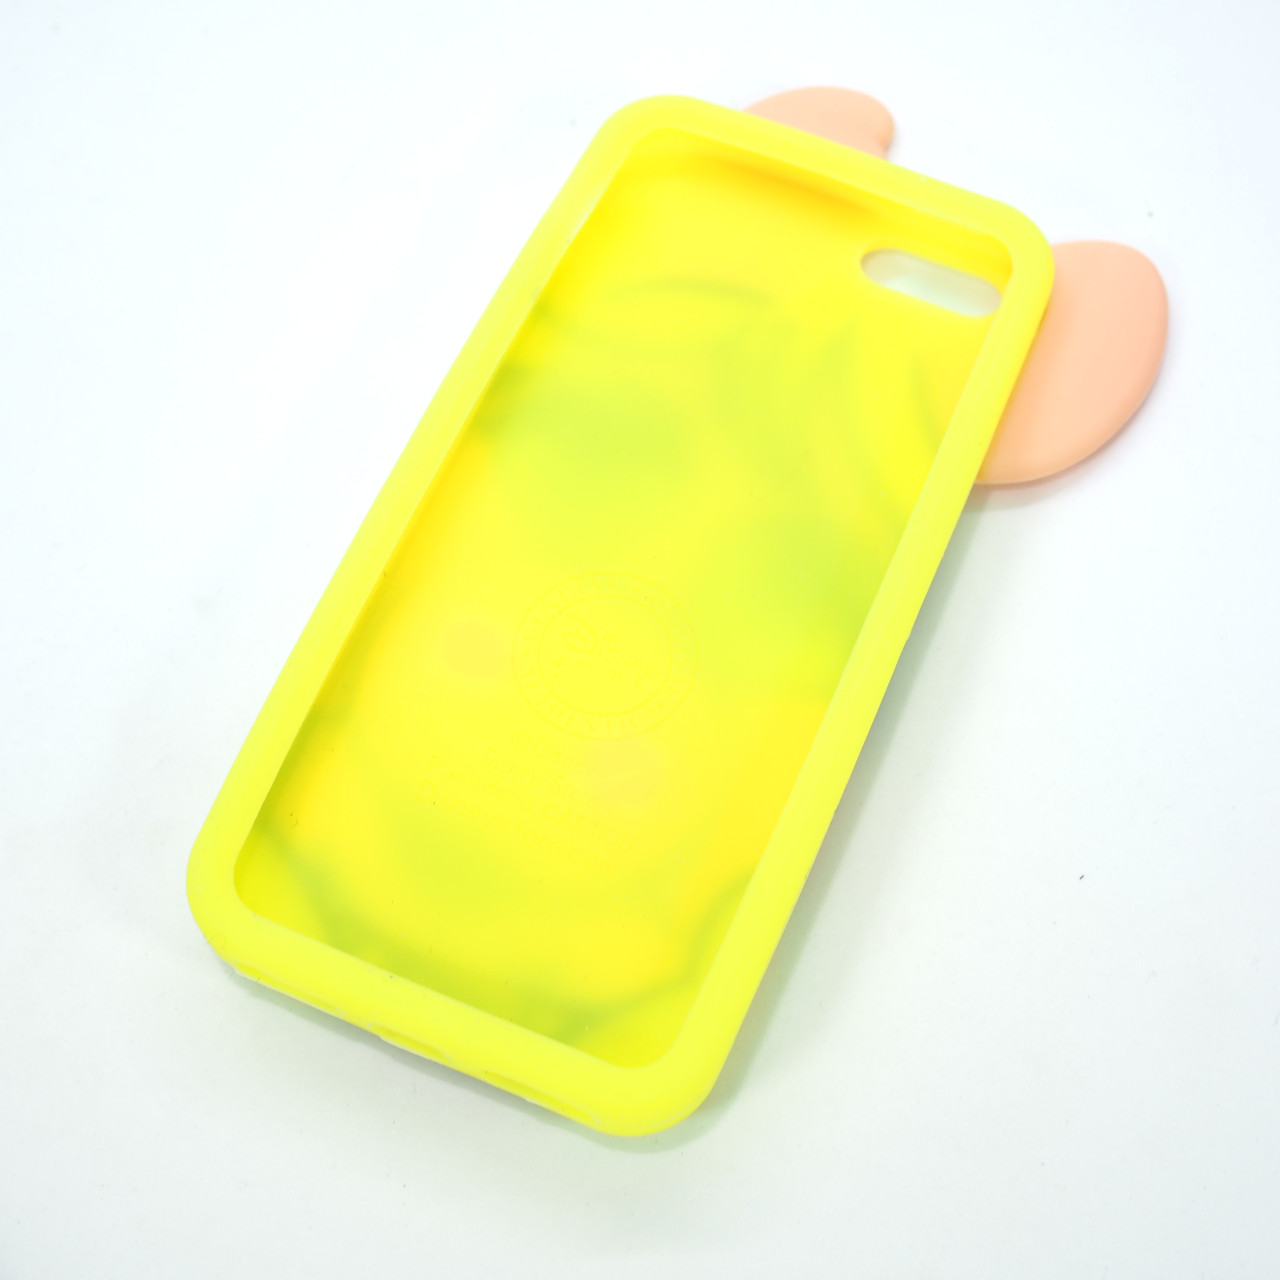 Silicon Moschino iPhone 5s SE Pig yellow Apple